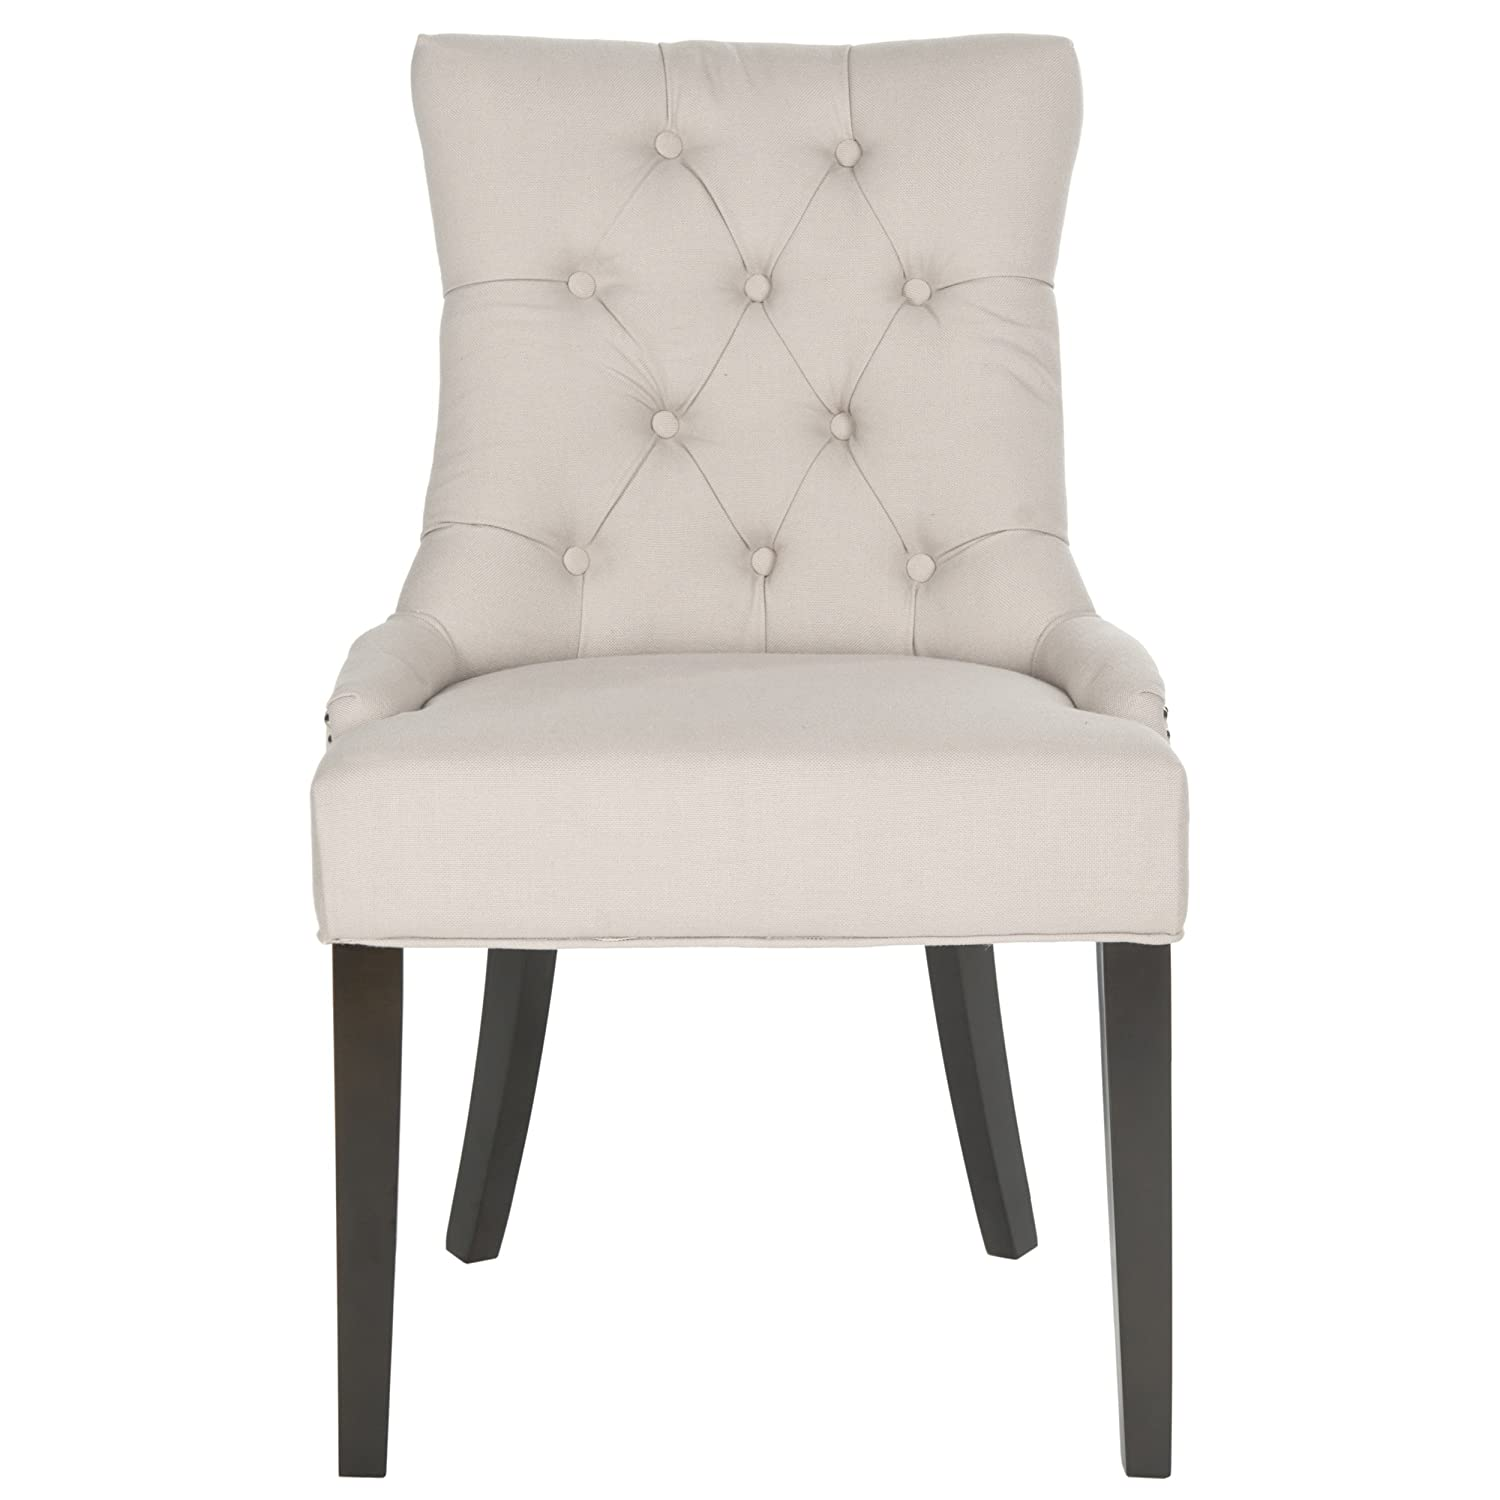 amazoncom safavieh mercer collection harlow ring chair taupe set of 2 chairs